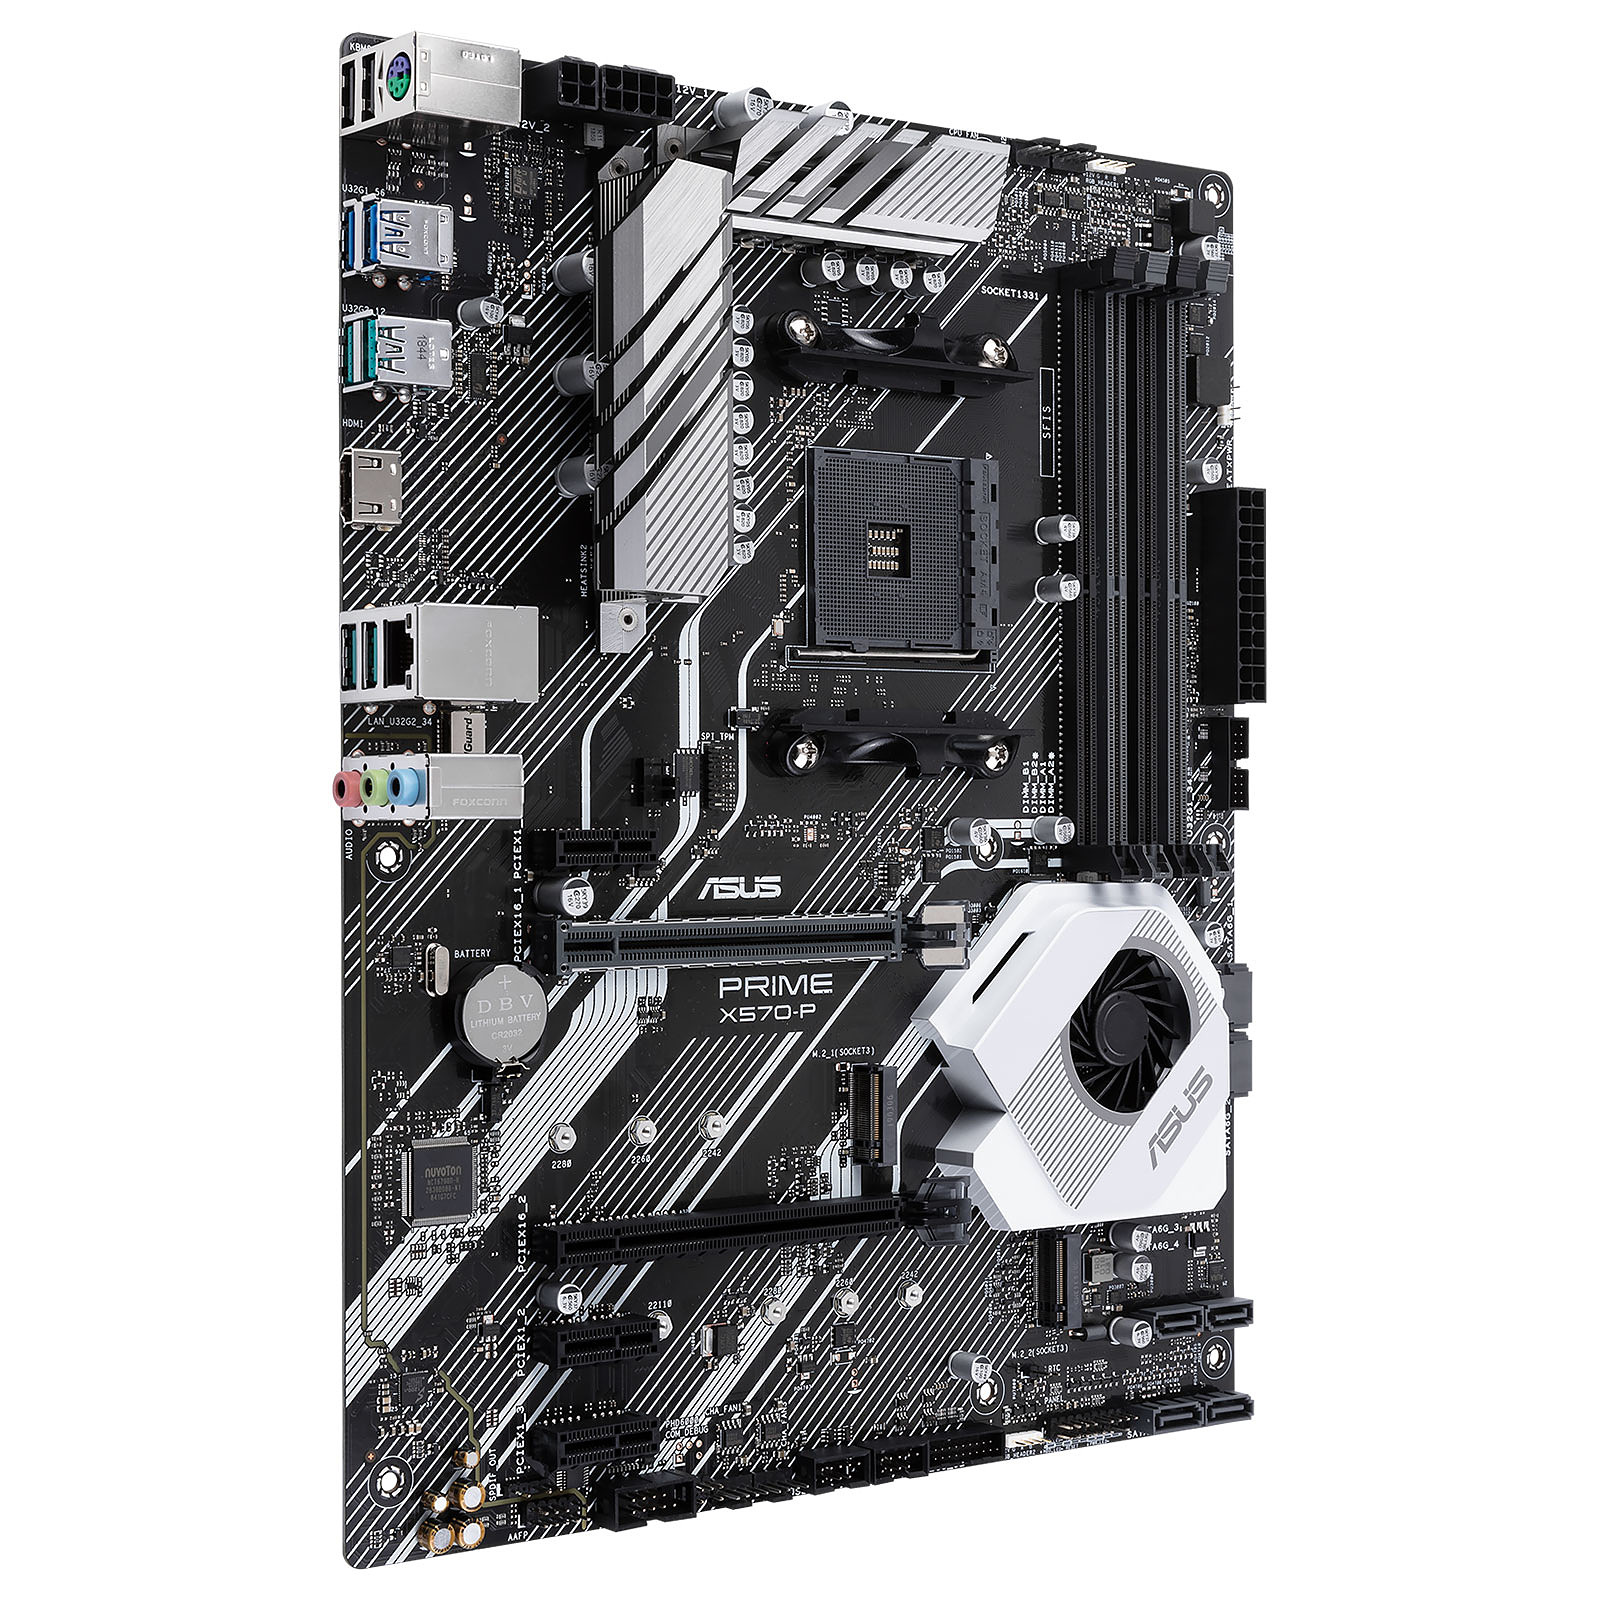 Carte mère Asus X570-P Socket AM4 (AMD X570) ATX, informatique ile de la Réunion 974